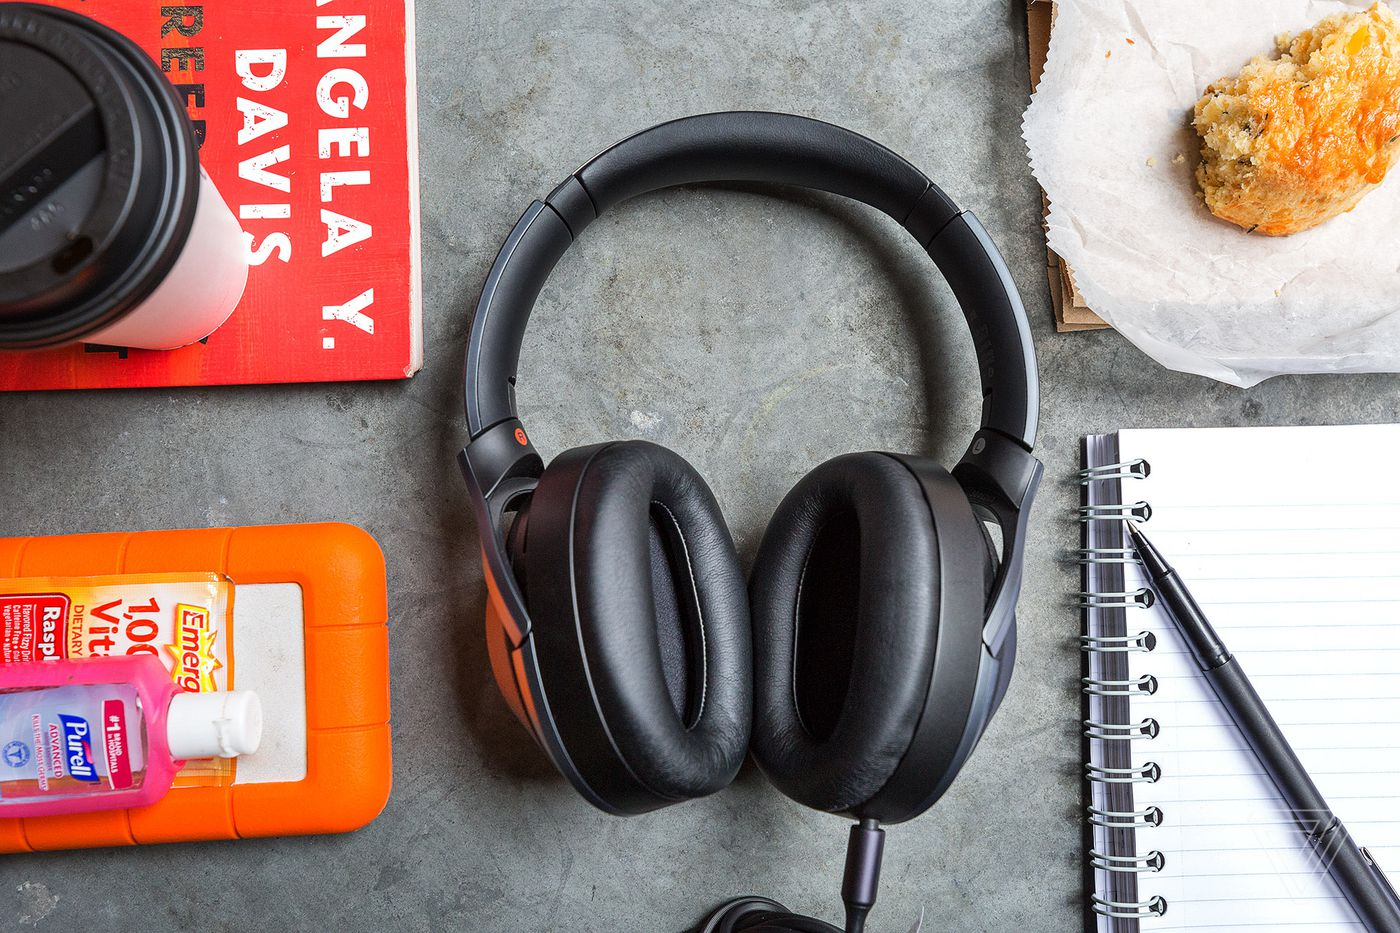 Sony 1000XM2 noise-cancelling headphones review: the